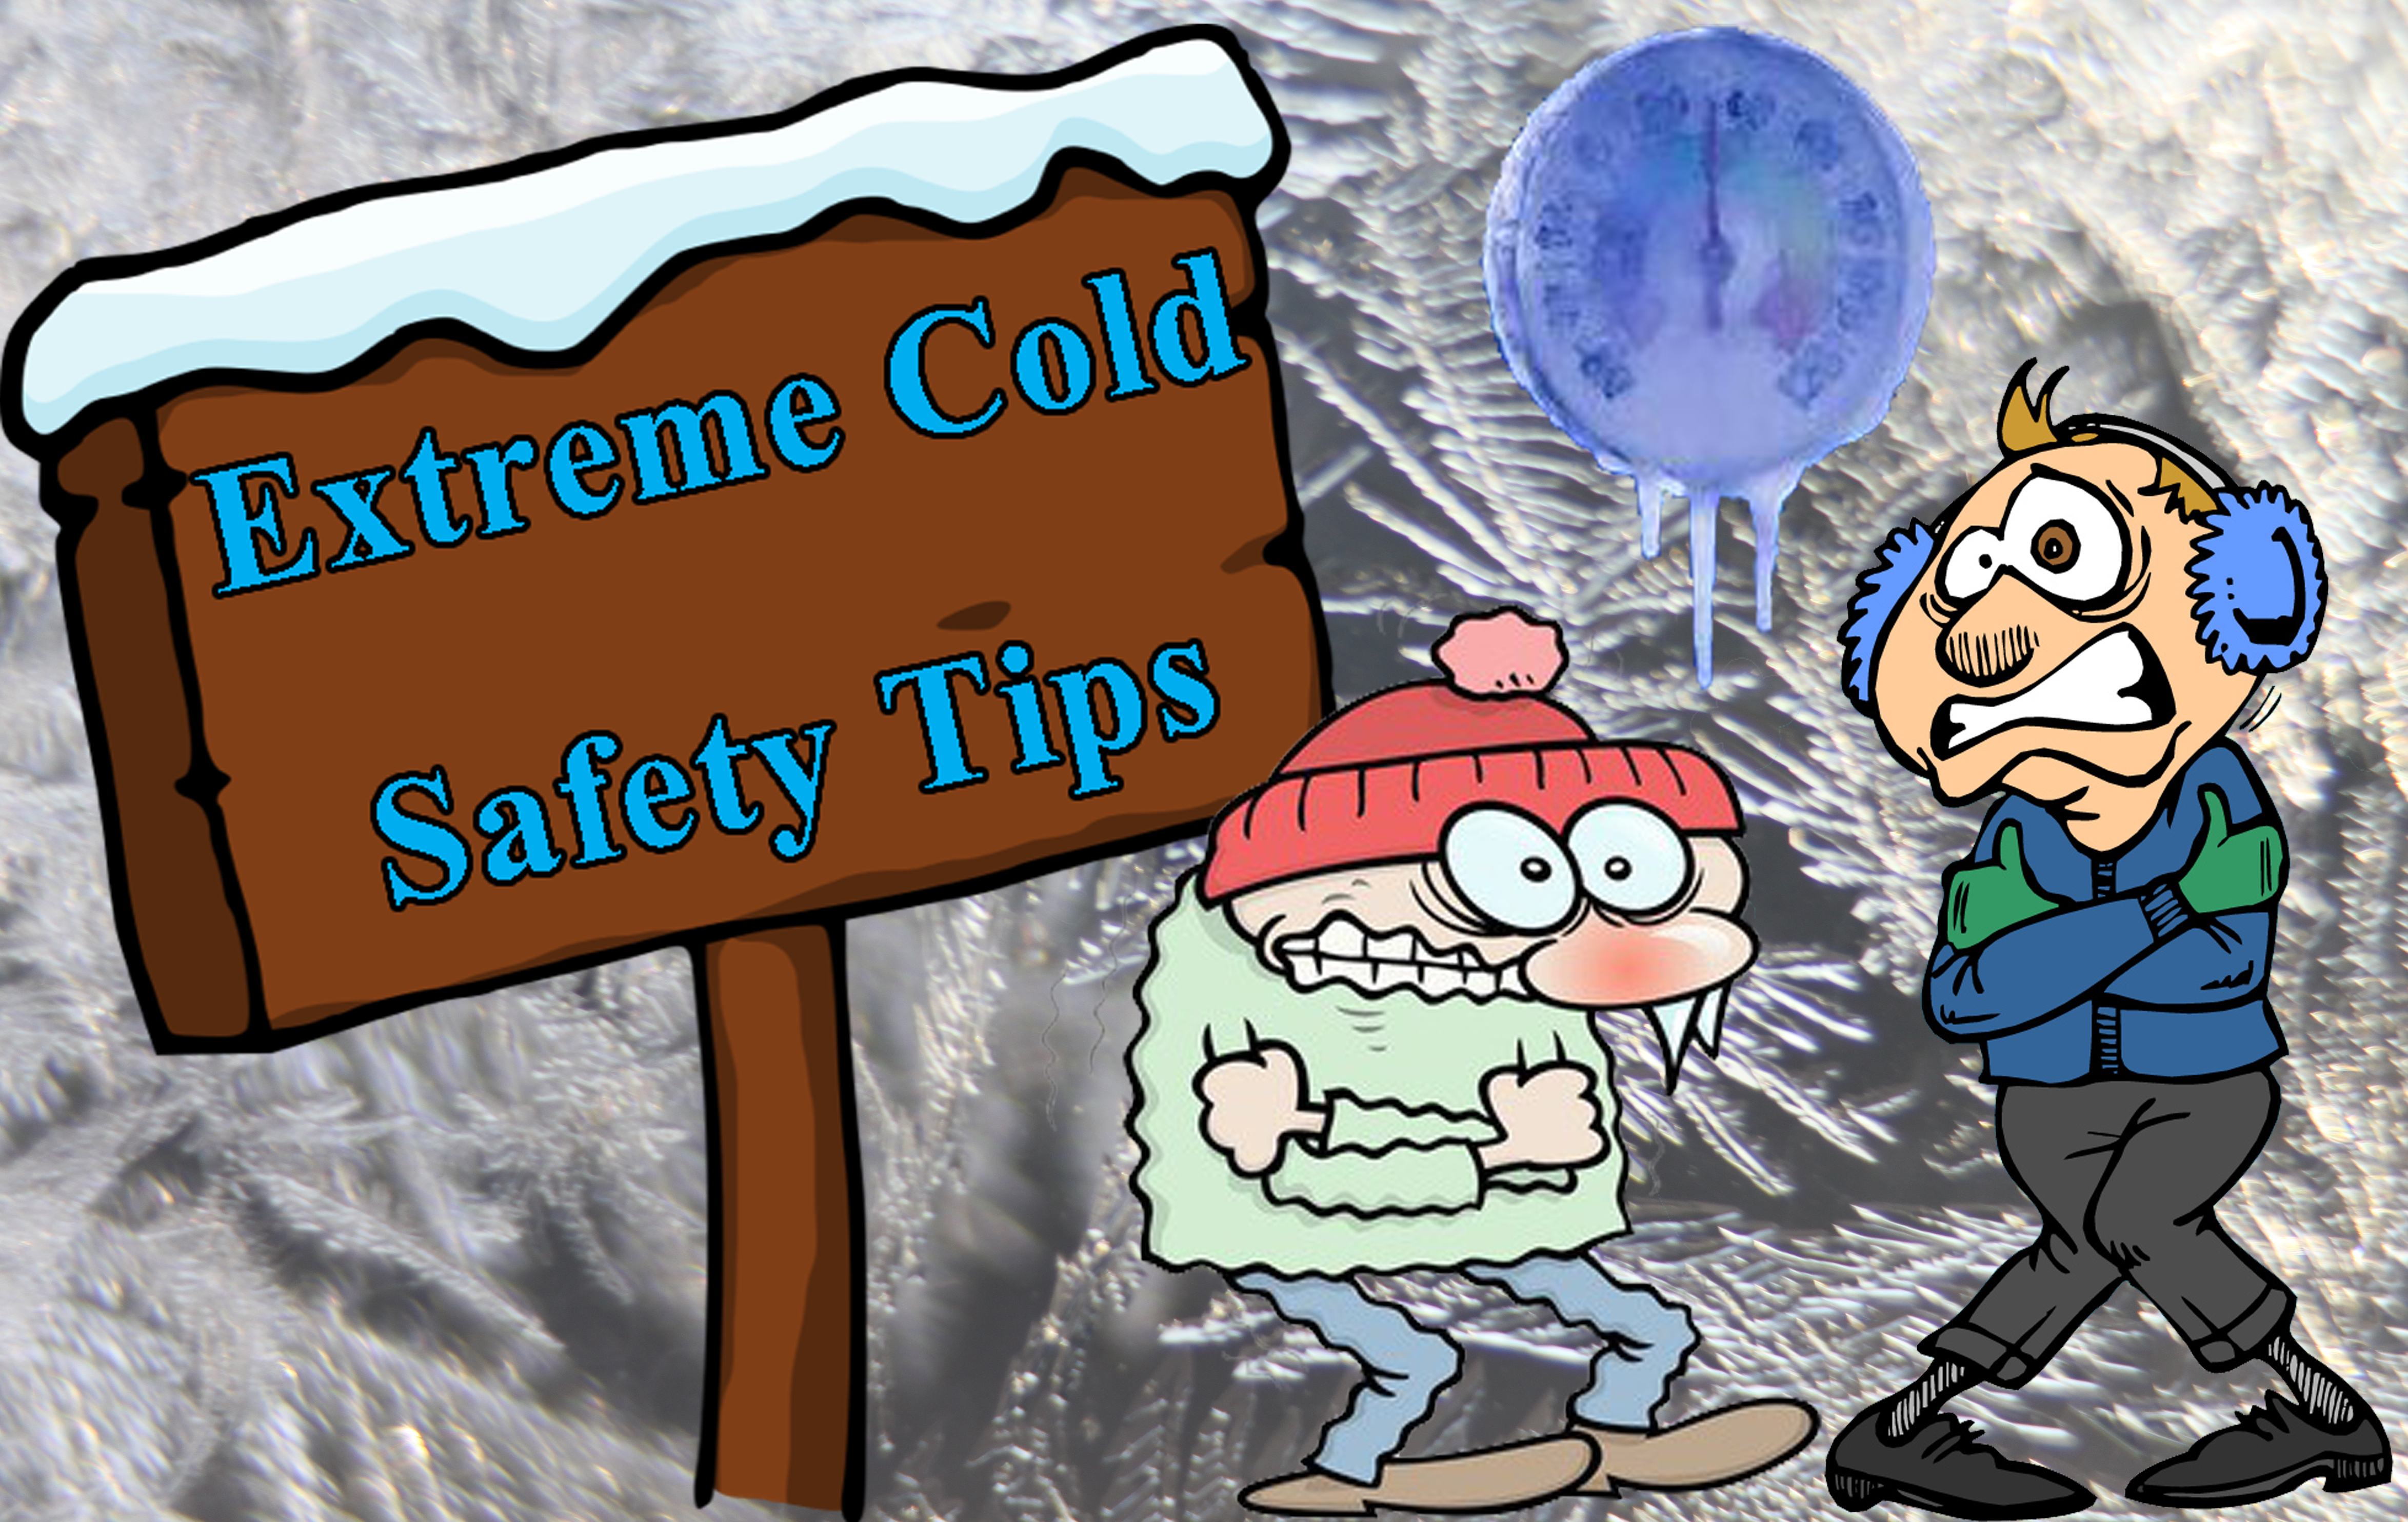 Chill clipart extreme cold Extreme  SAFETY Tips FOR